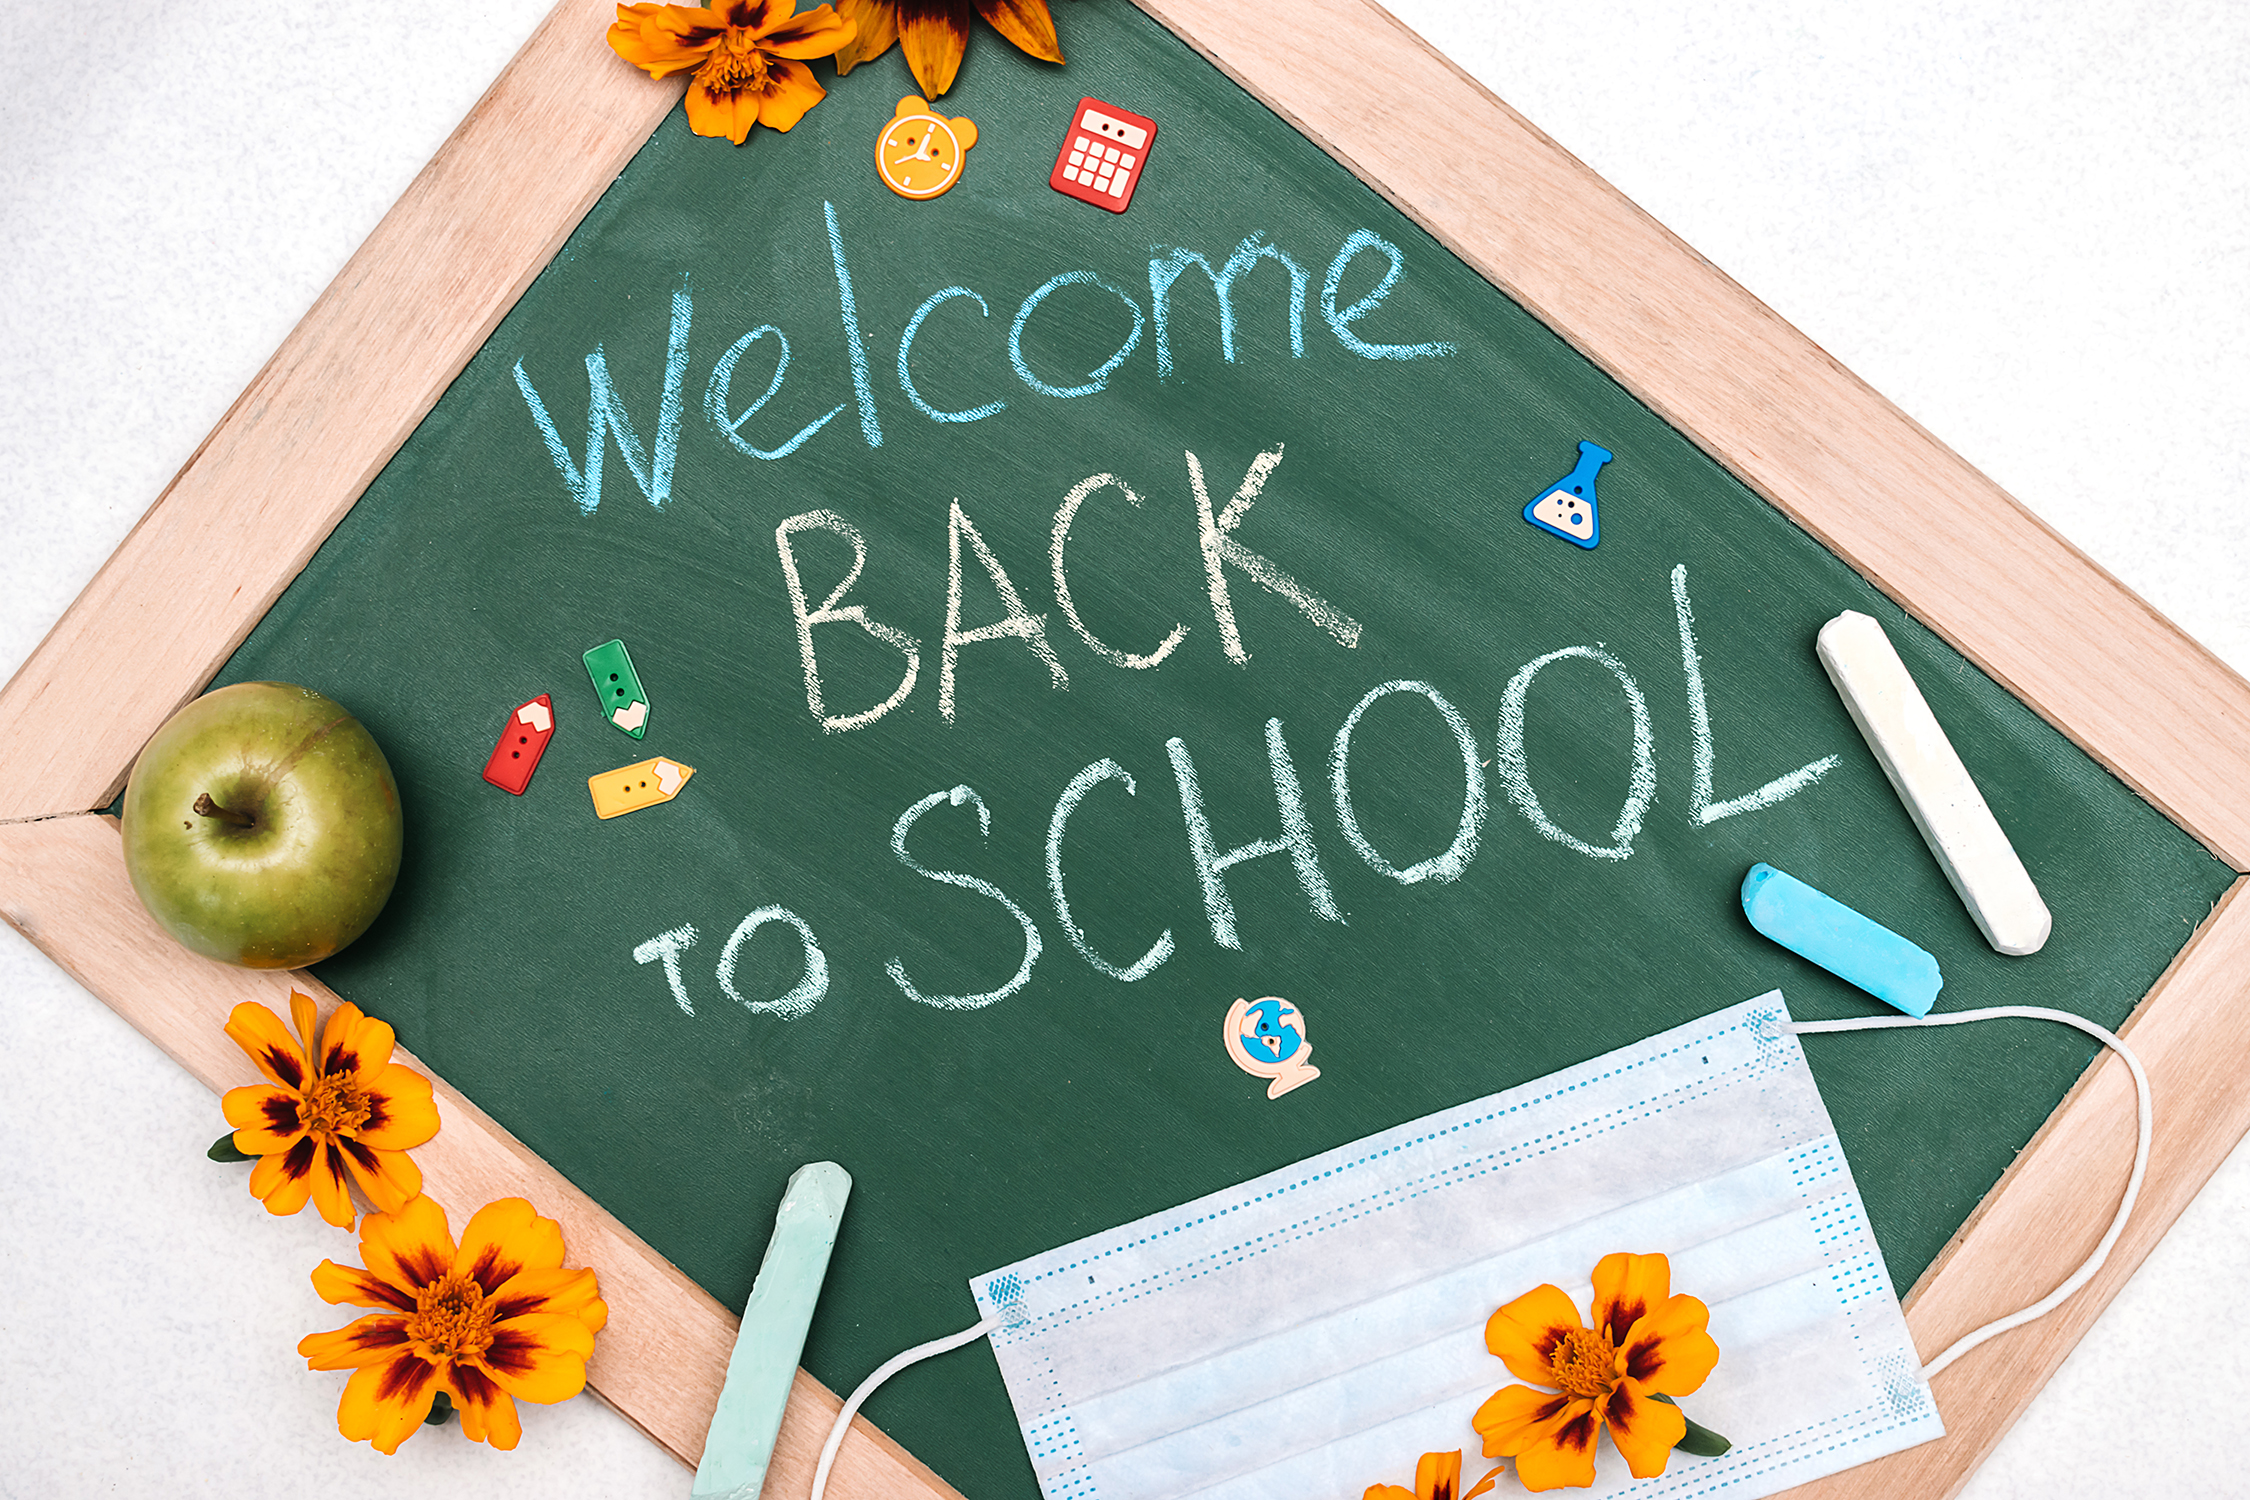 Welcome Back To School on handheld chalkboard with chalk, apple, mask, decorations (9/2020)